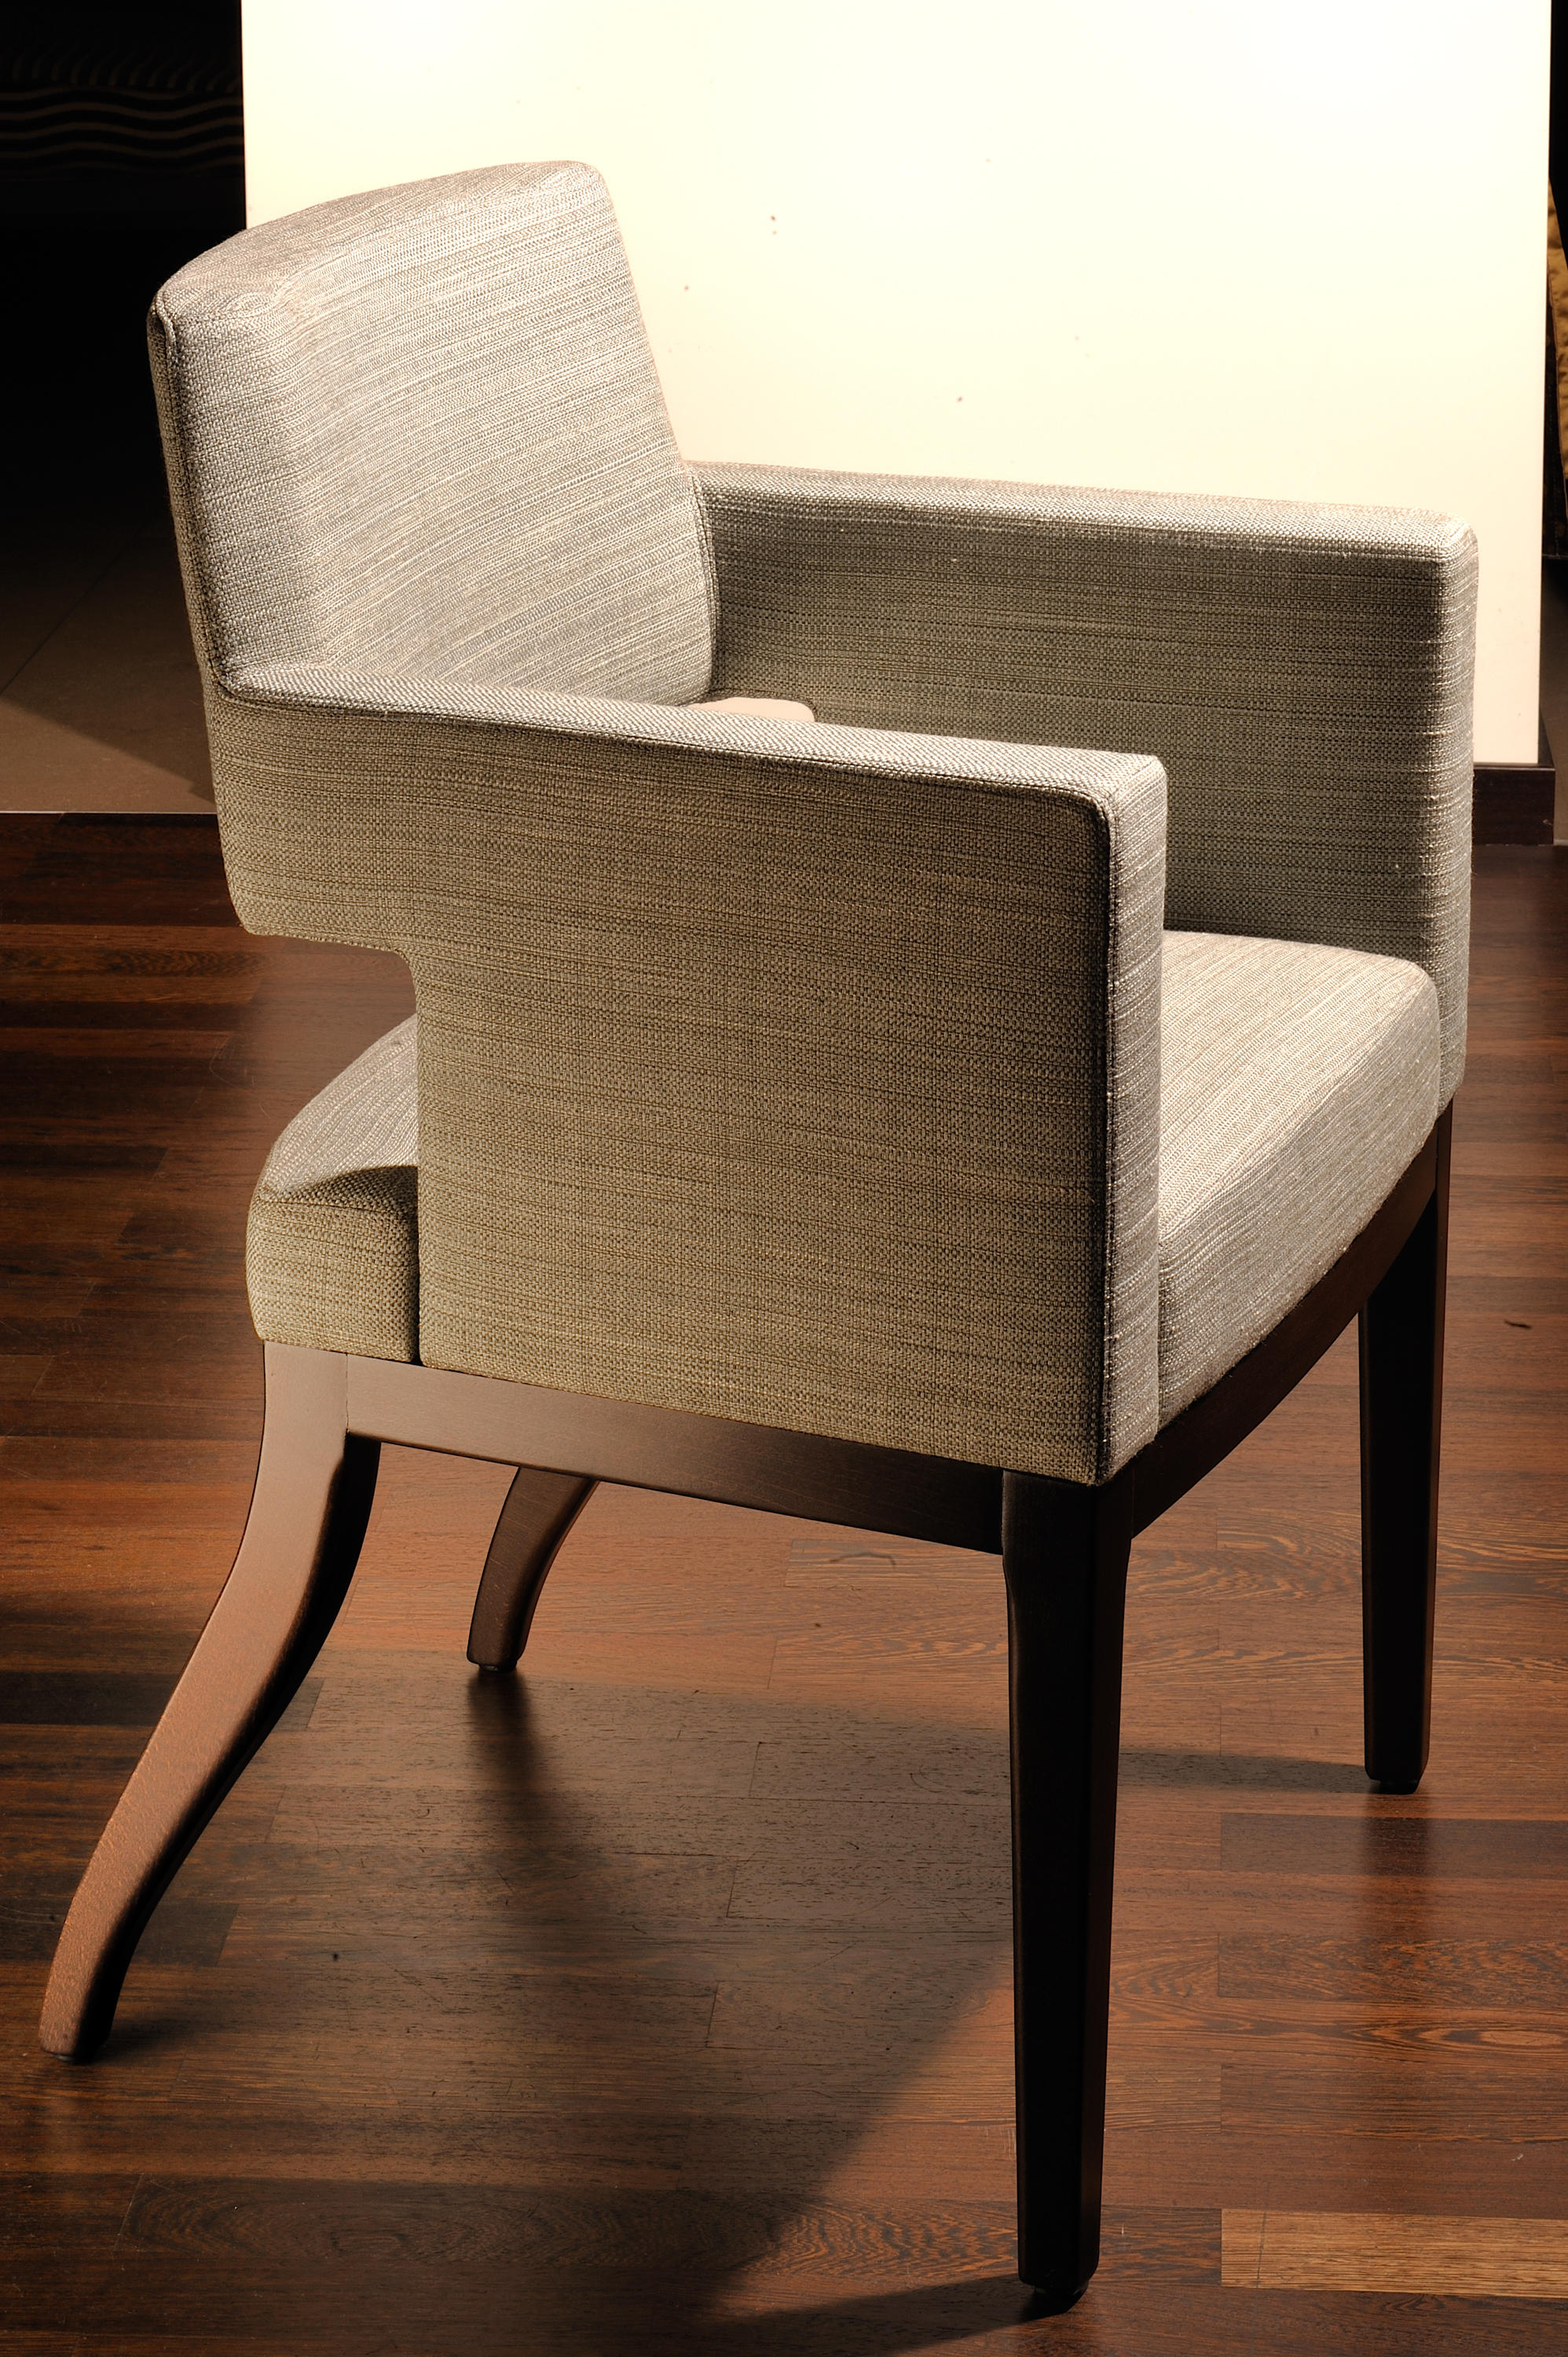 stay chair conference chairs from zimmer rohde. Black Bedroom Furniture Sets. Home Design Ideas